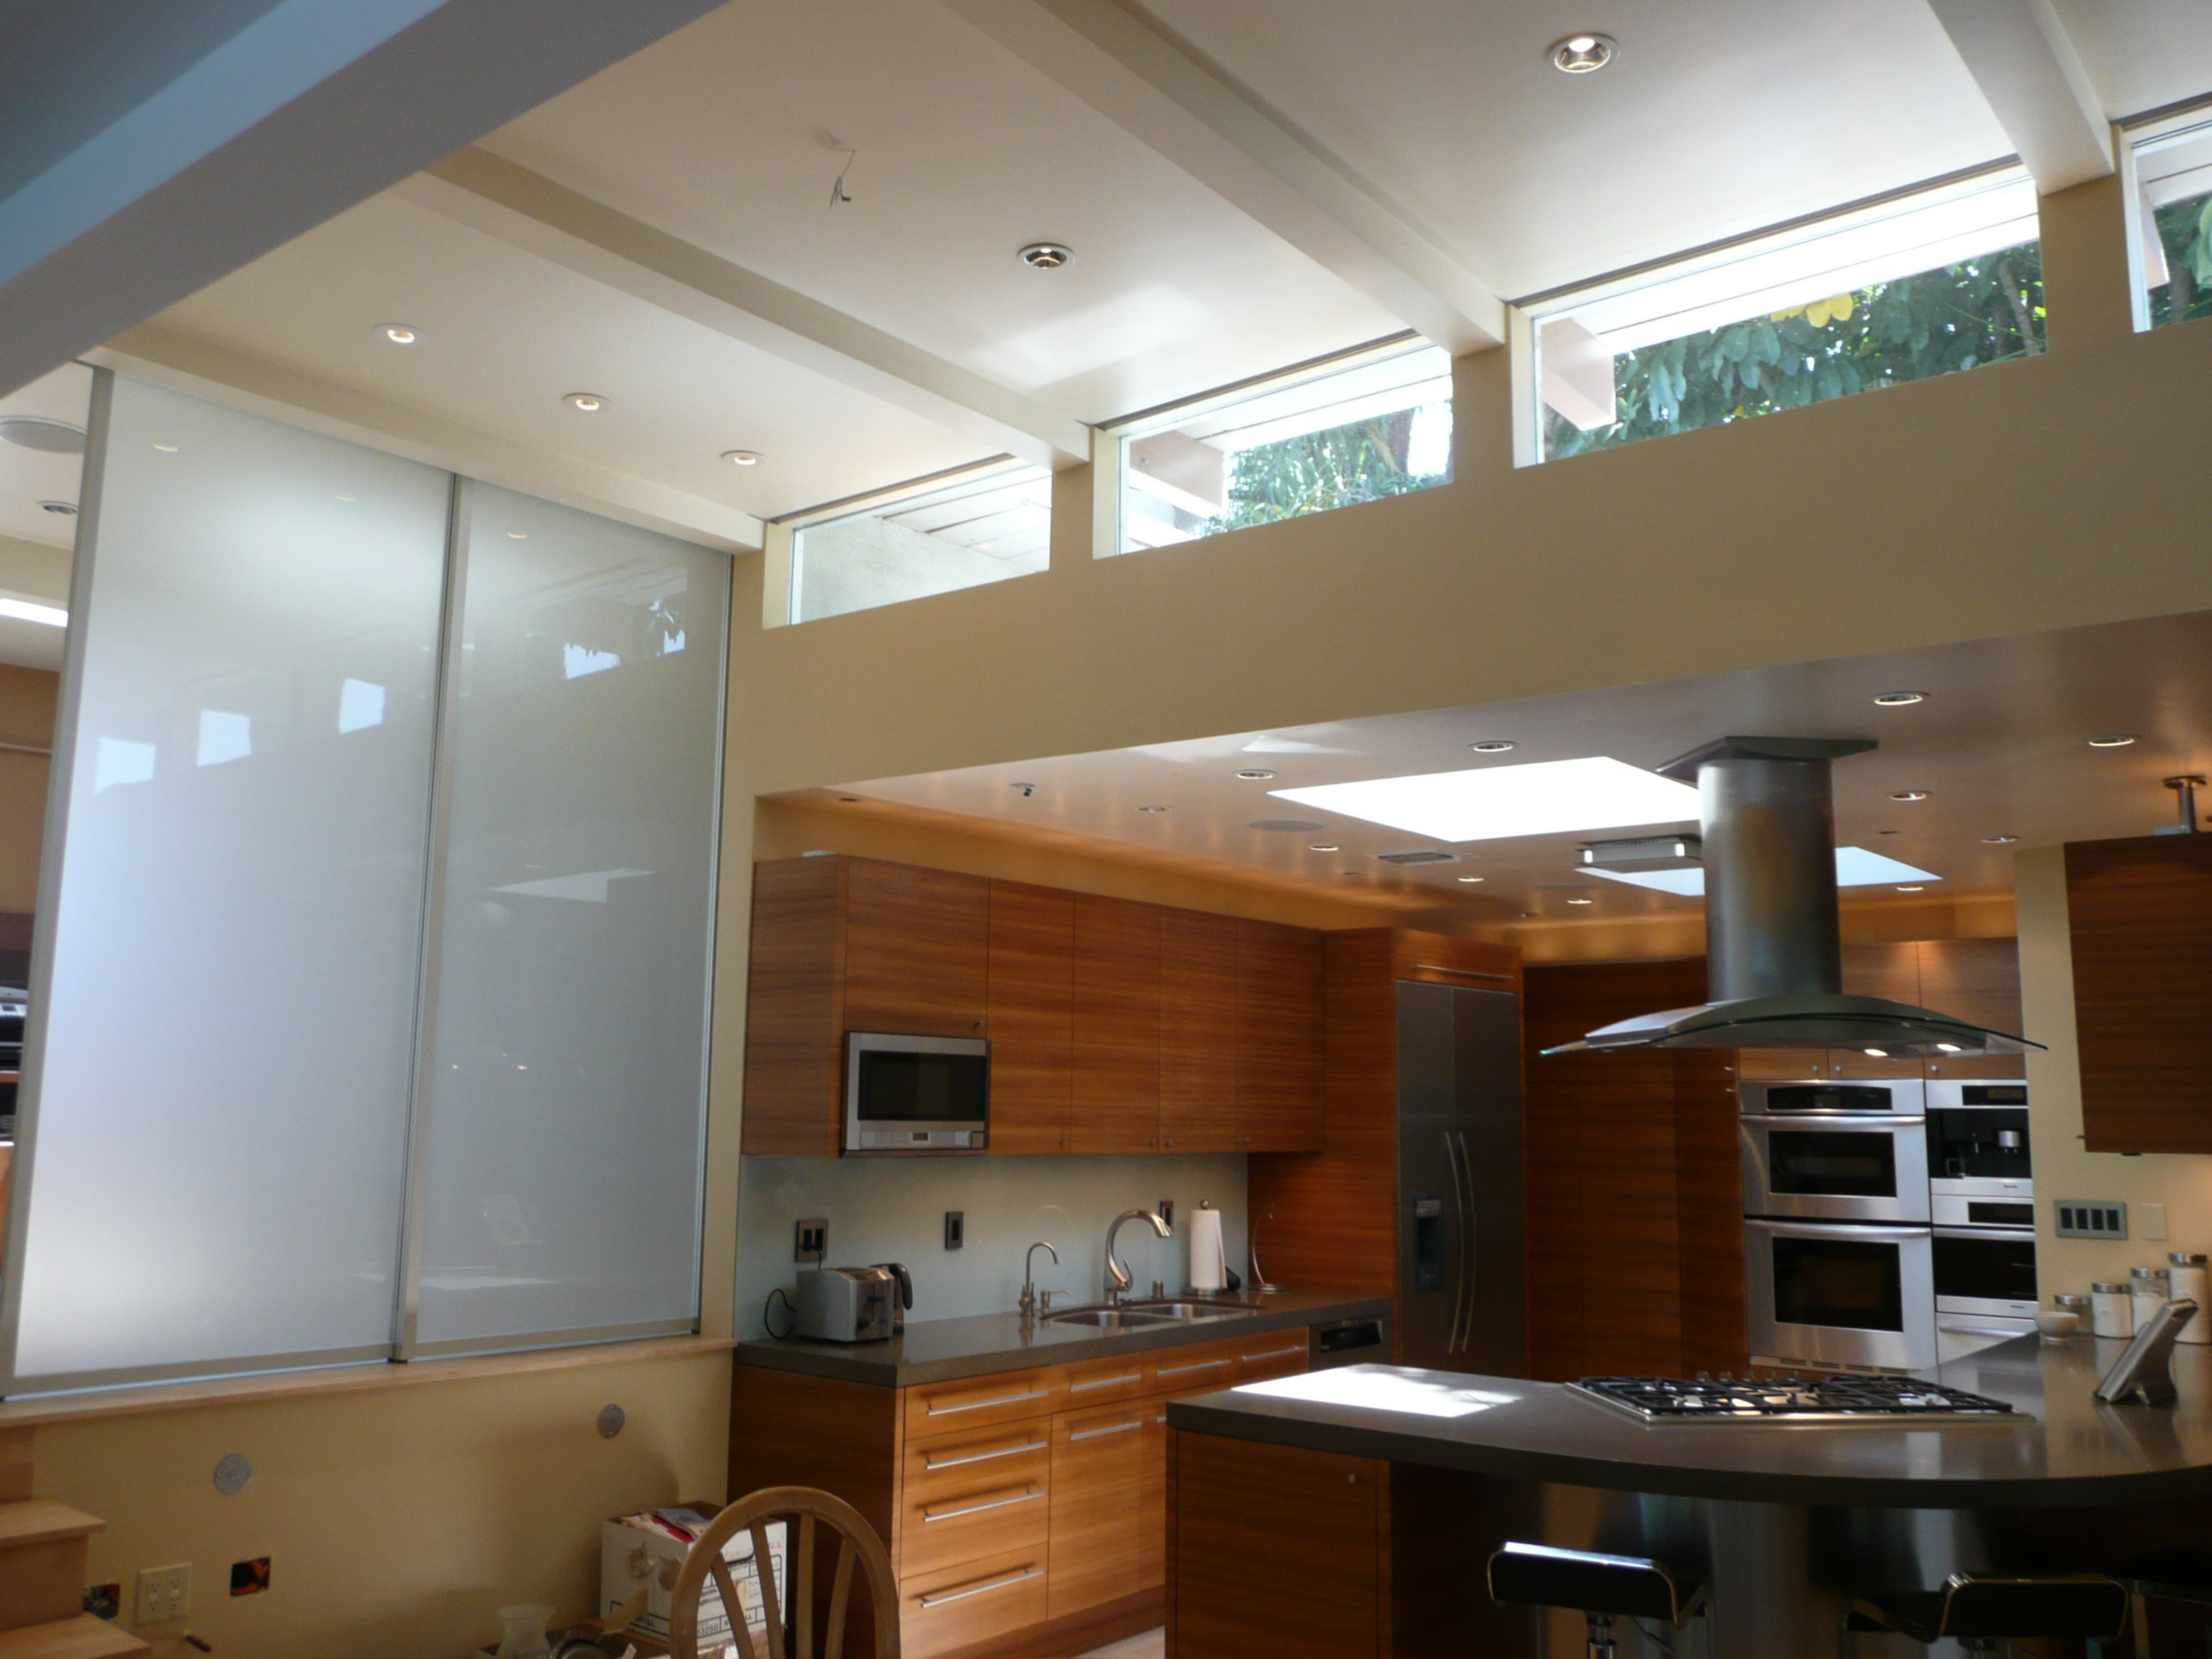 14 ft ceilings open kitchen area and open loft den area Windows have recessed pockets shades for day viewing Glass sliders are usually recessed into wall opening to den area.